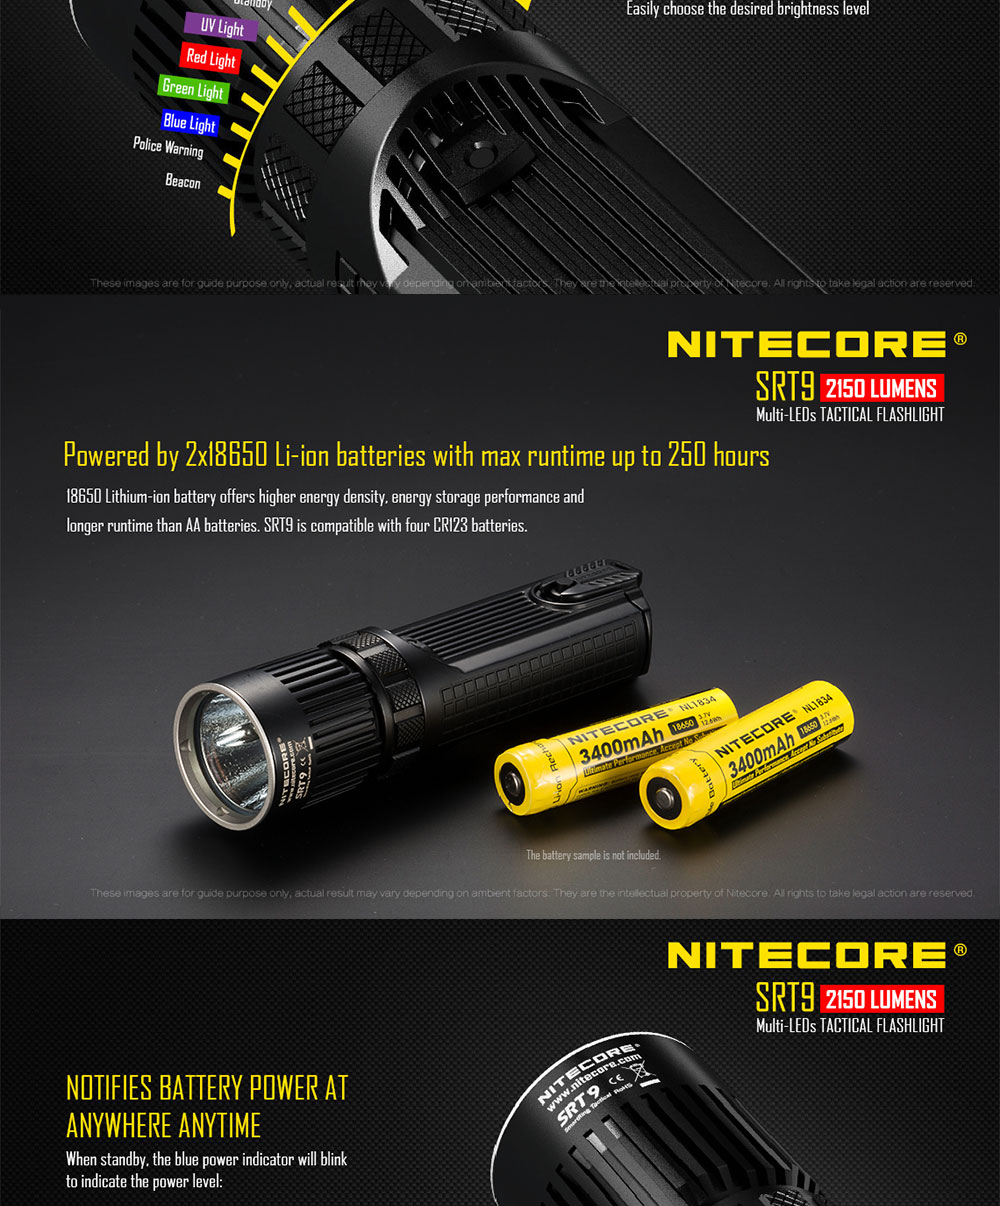 new nitecore flashlight